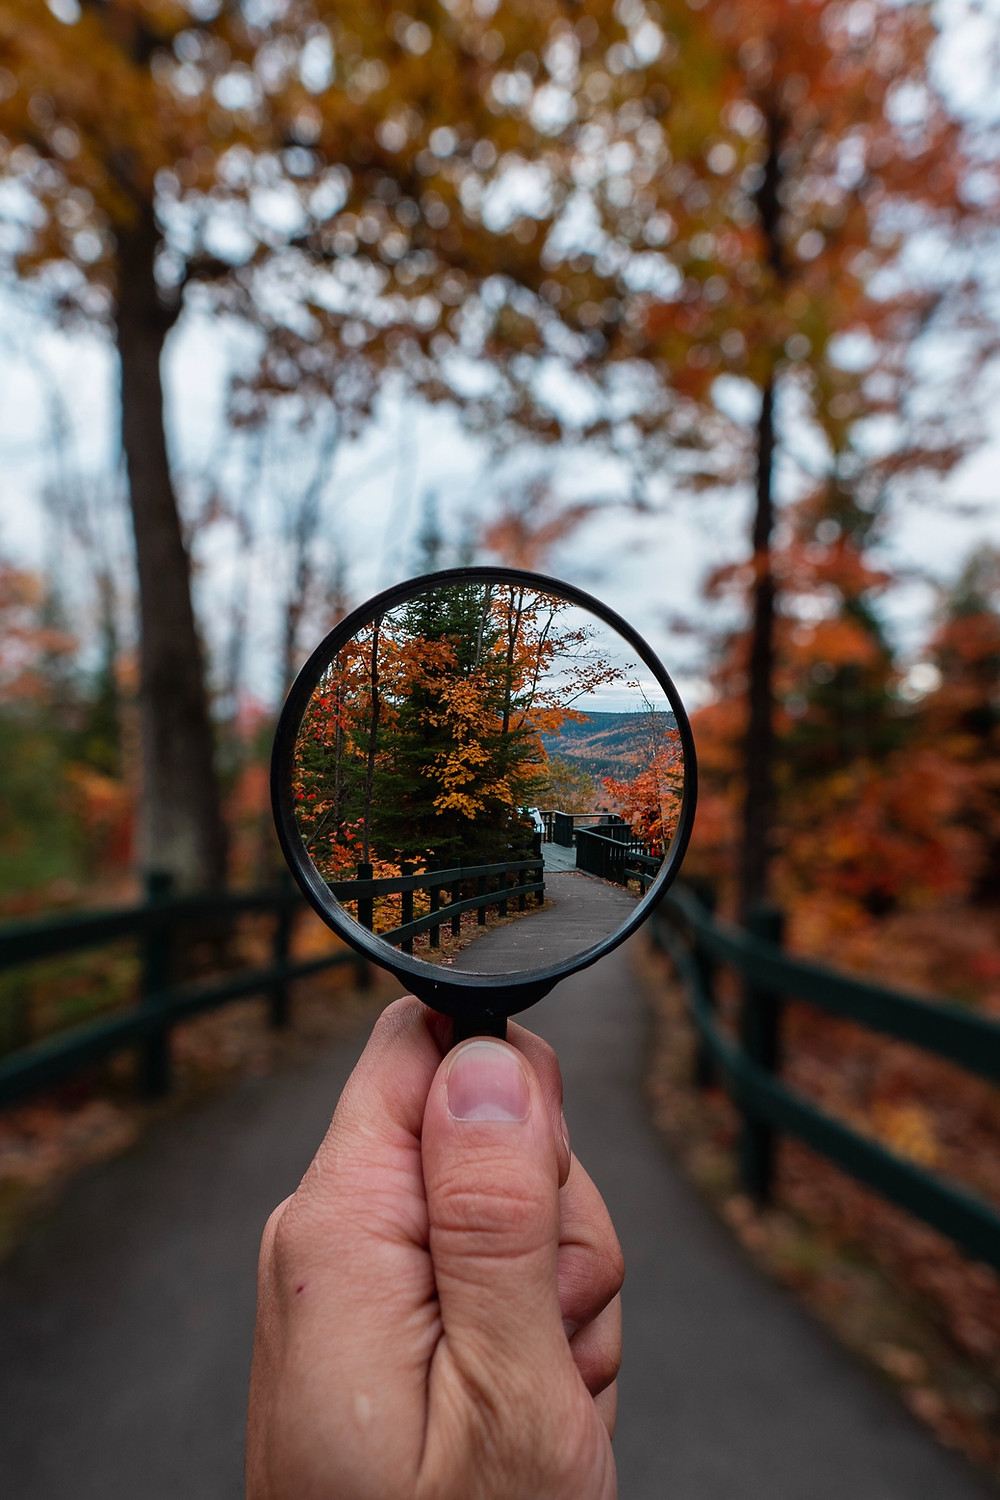 Starting a New Business? Be aware of the magnifying glass effect